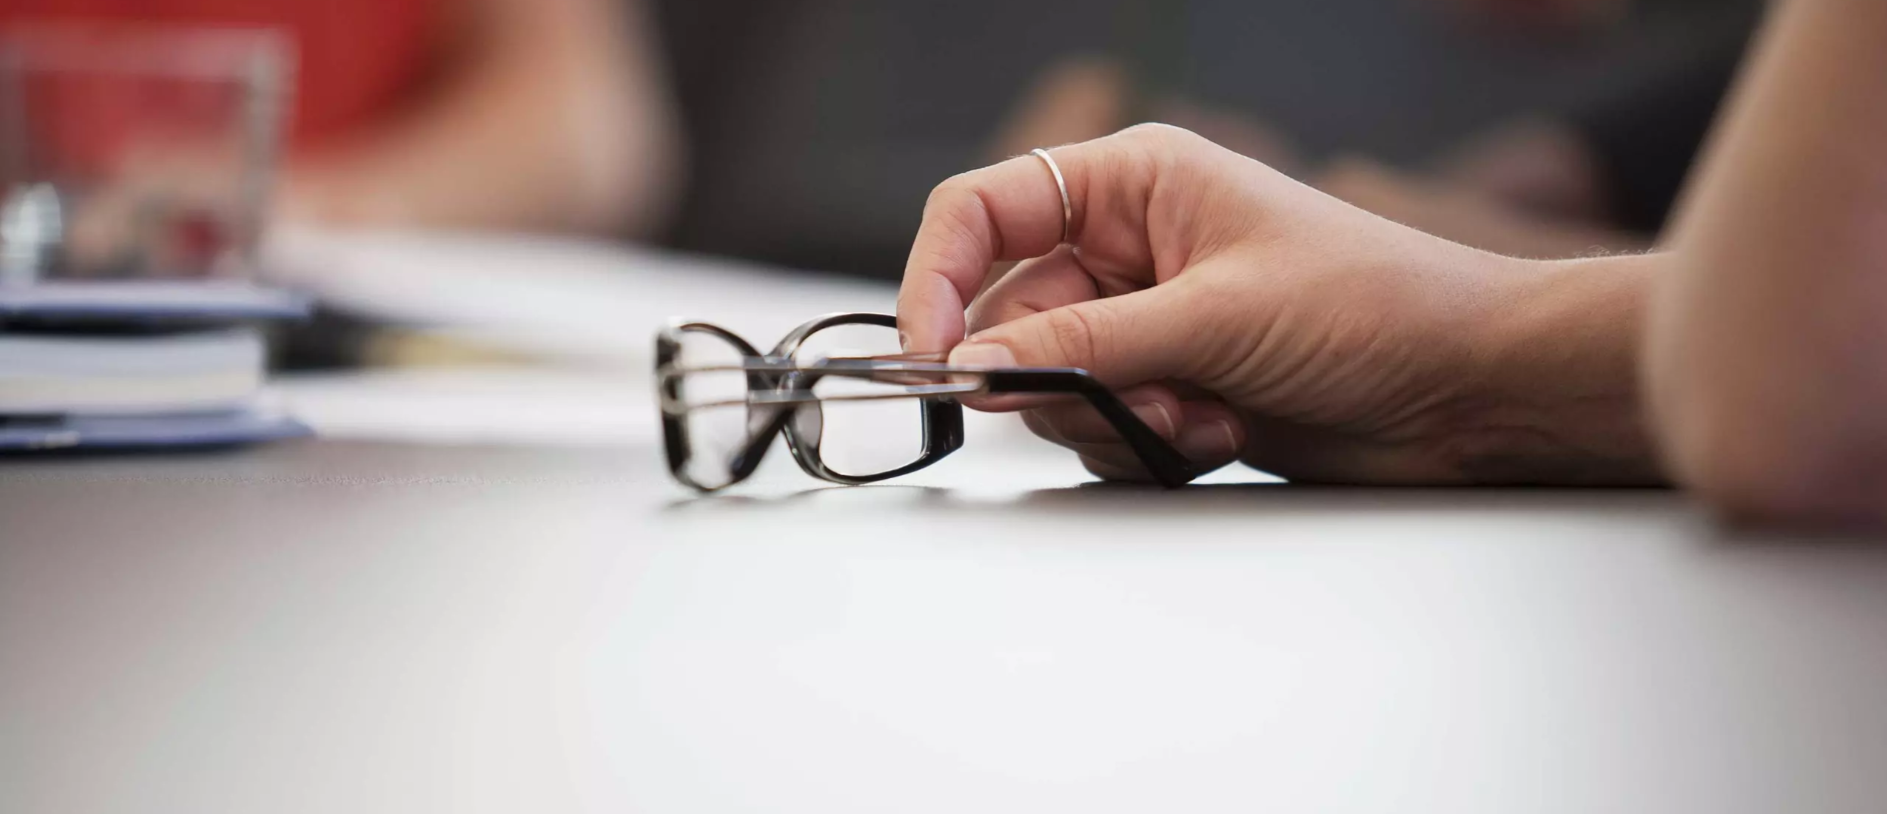 Person holding glasses on a table in a meeting